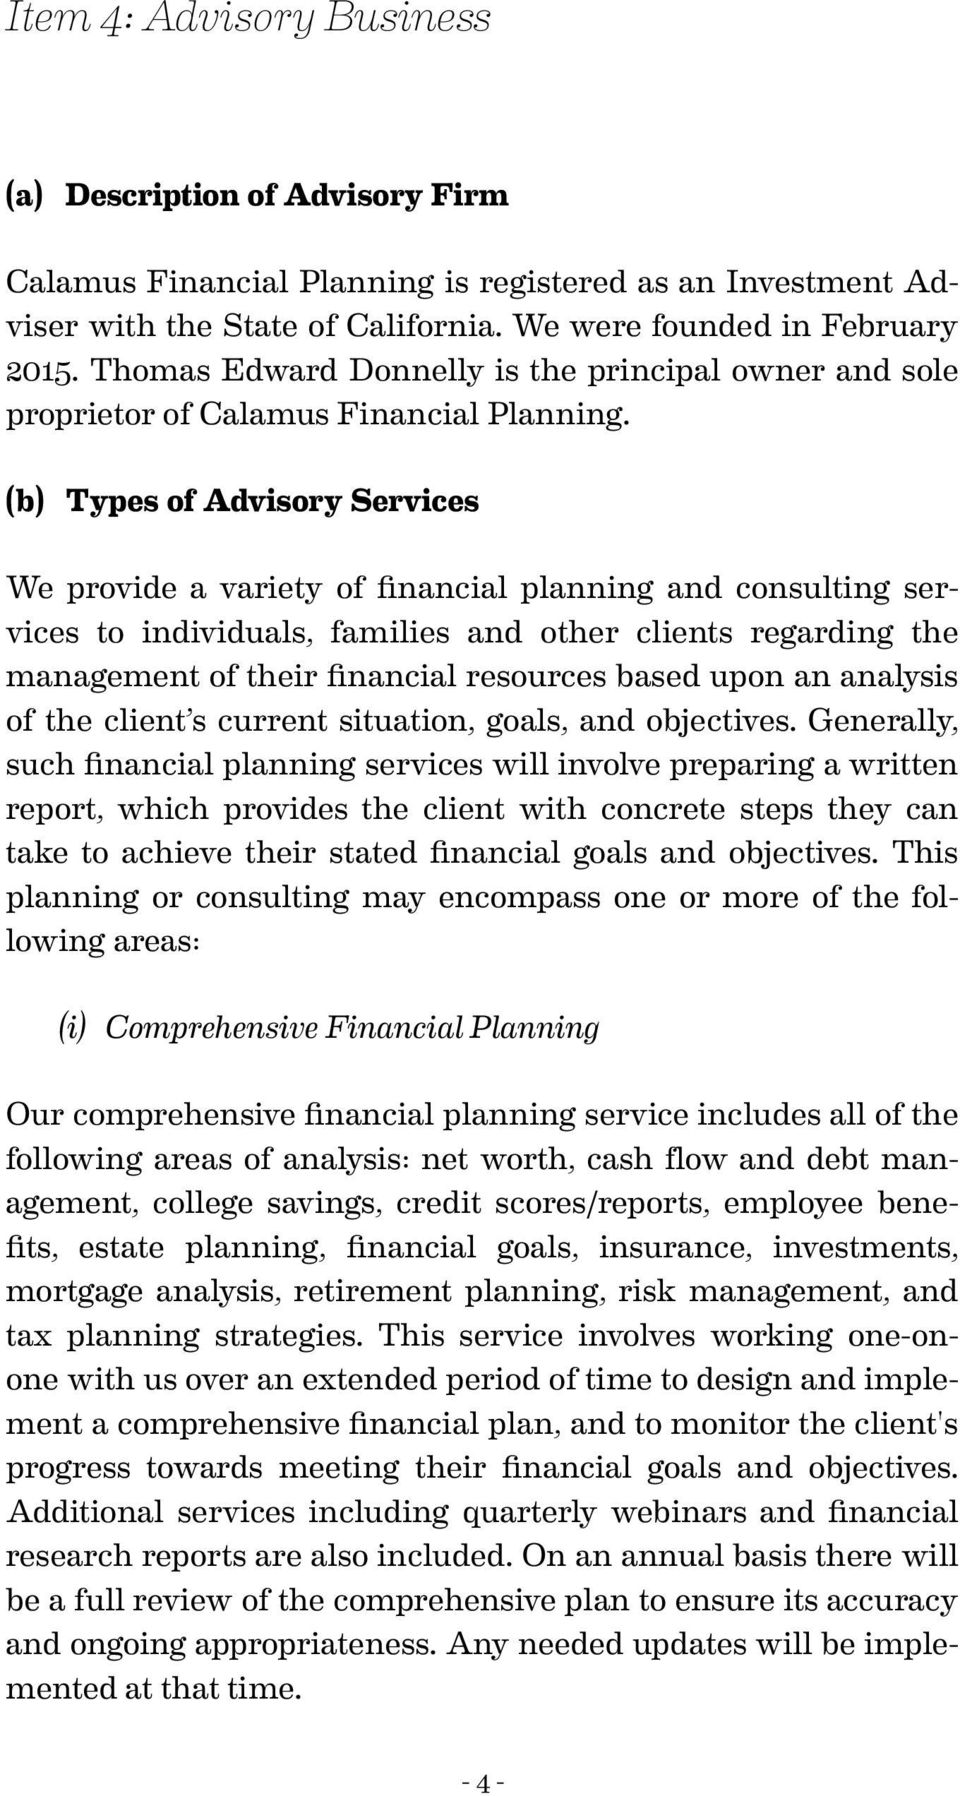 (b) Types of Advisory Services We provide a variety of financial planning and consulting services to individuals, families and other clients regarding the management of their financial resources